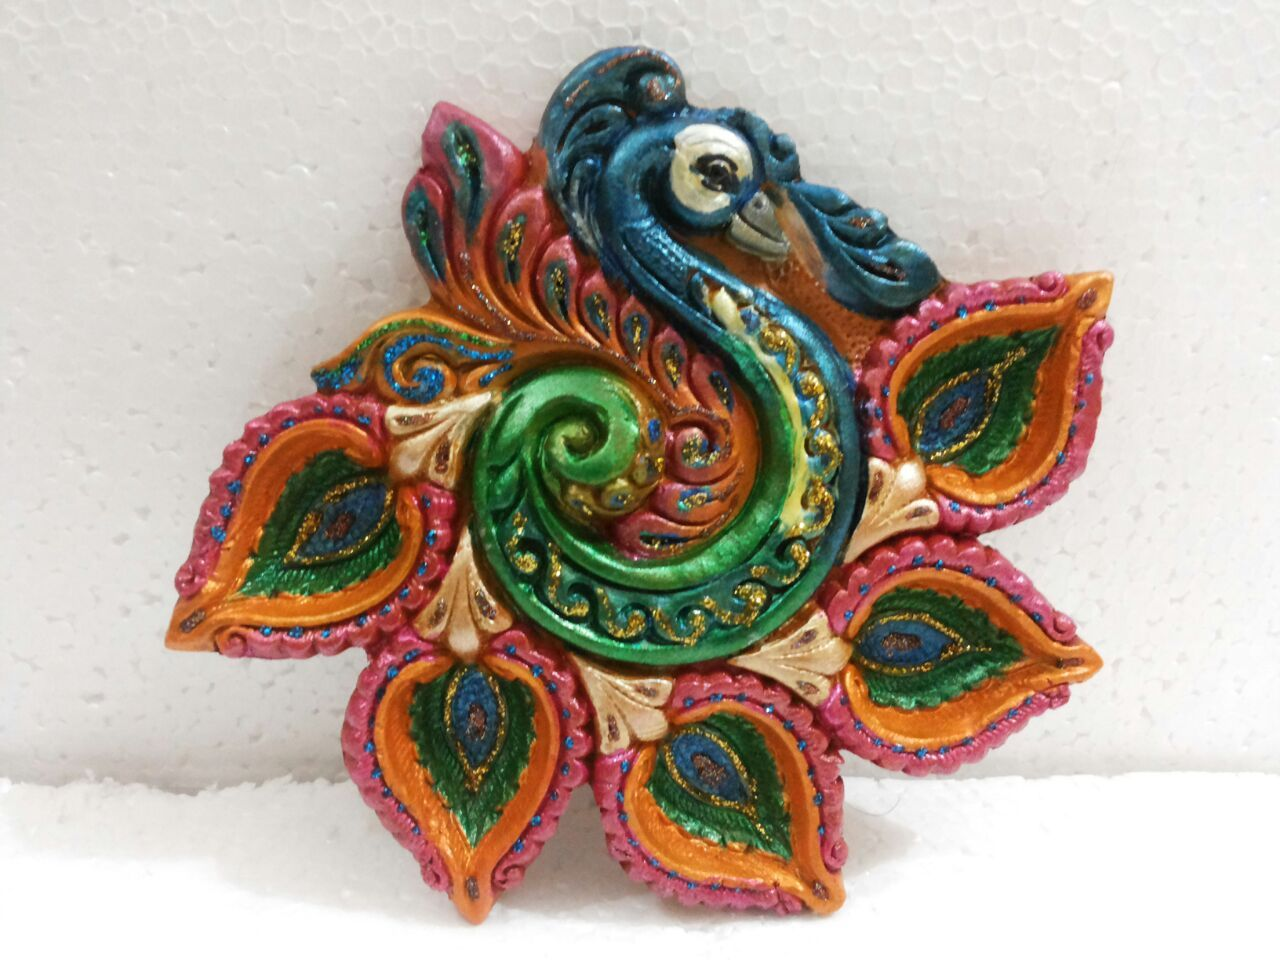 Single Handpainted Small Peacock Shaped Diya Enriched With Glitter Buy Online From Craftsho Diy Diwali Decorations Diwali Diya Decoration Diwali Decorations